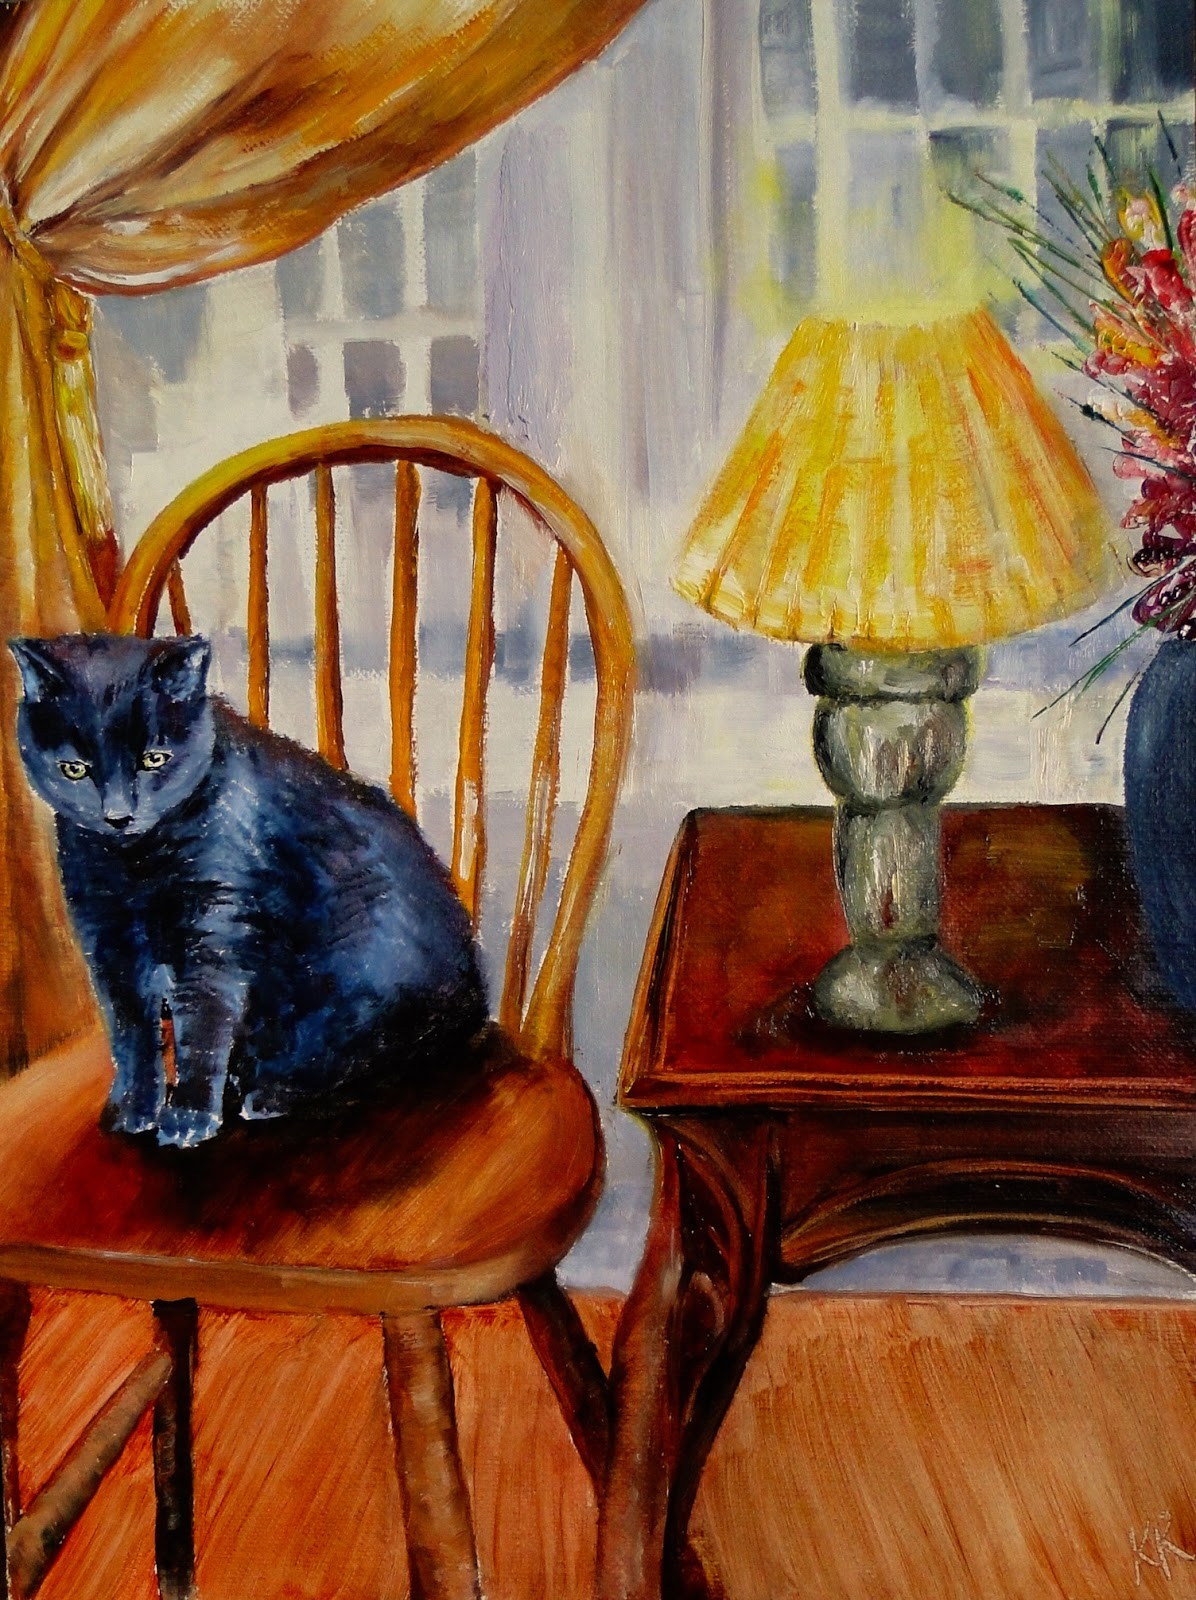 a small, black cat; seated on a wheel back chair, oil painting of a room interior, a pet portrait by karen